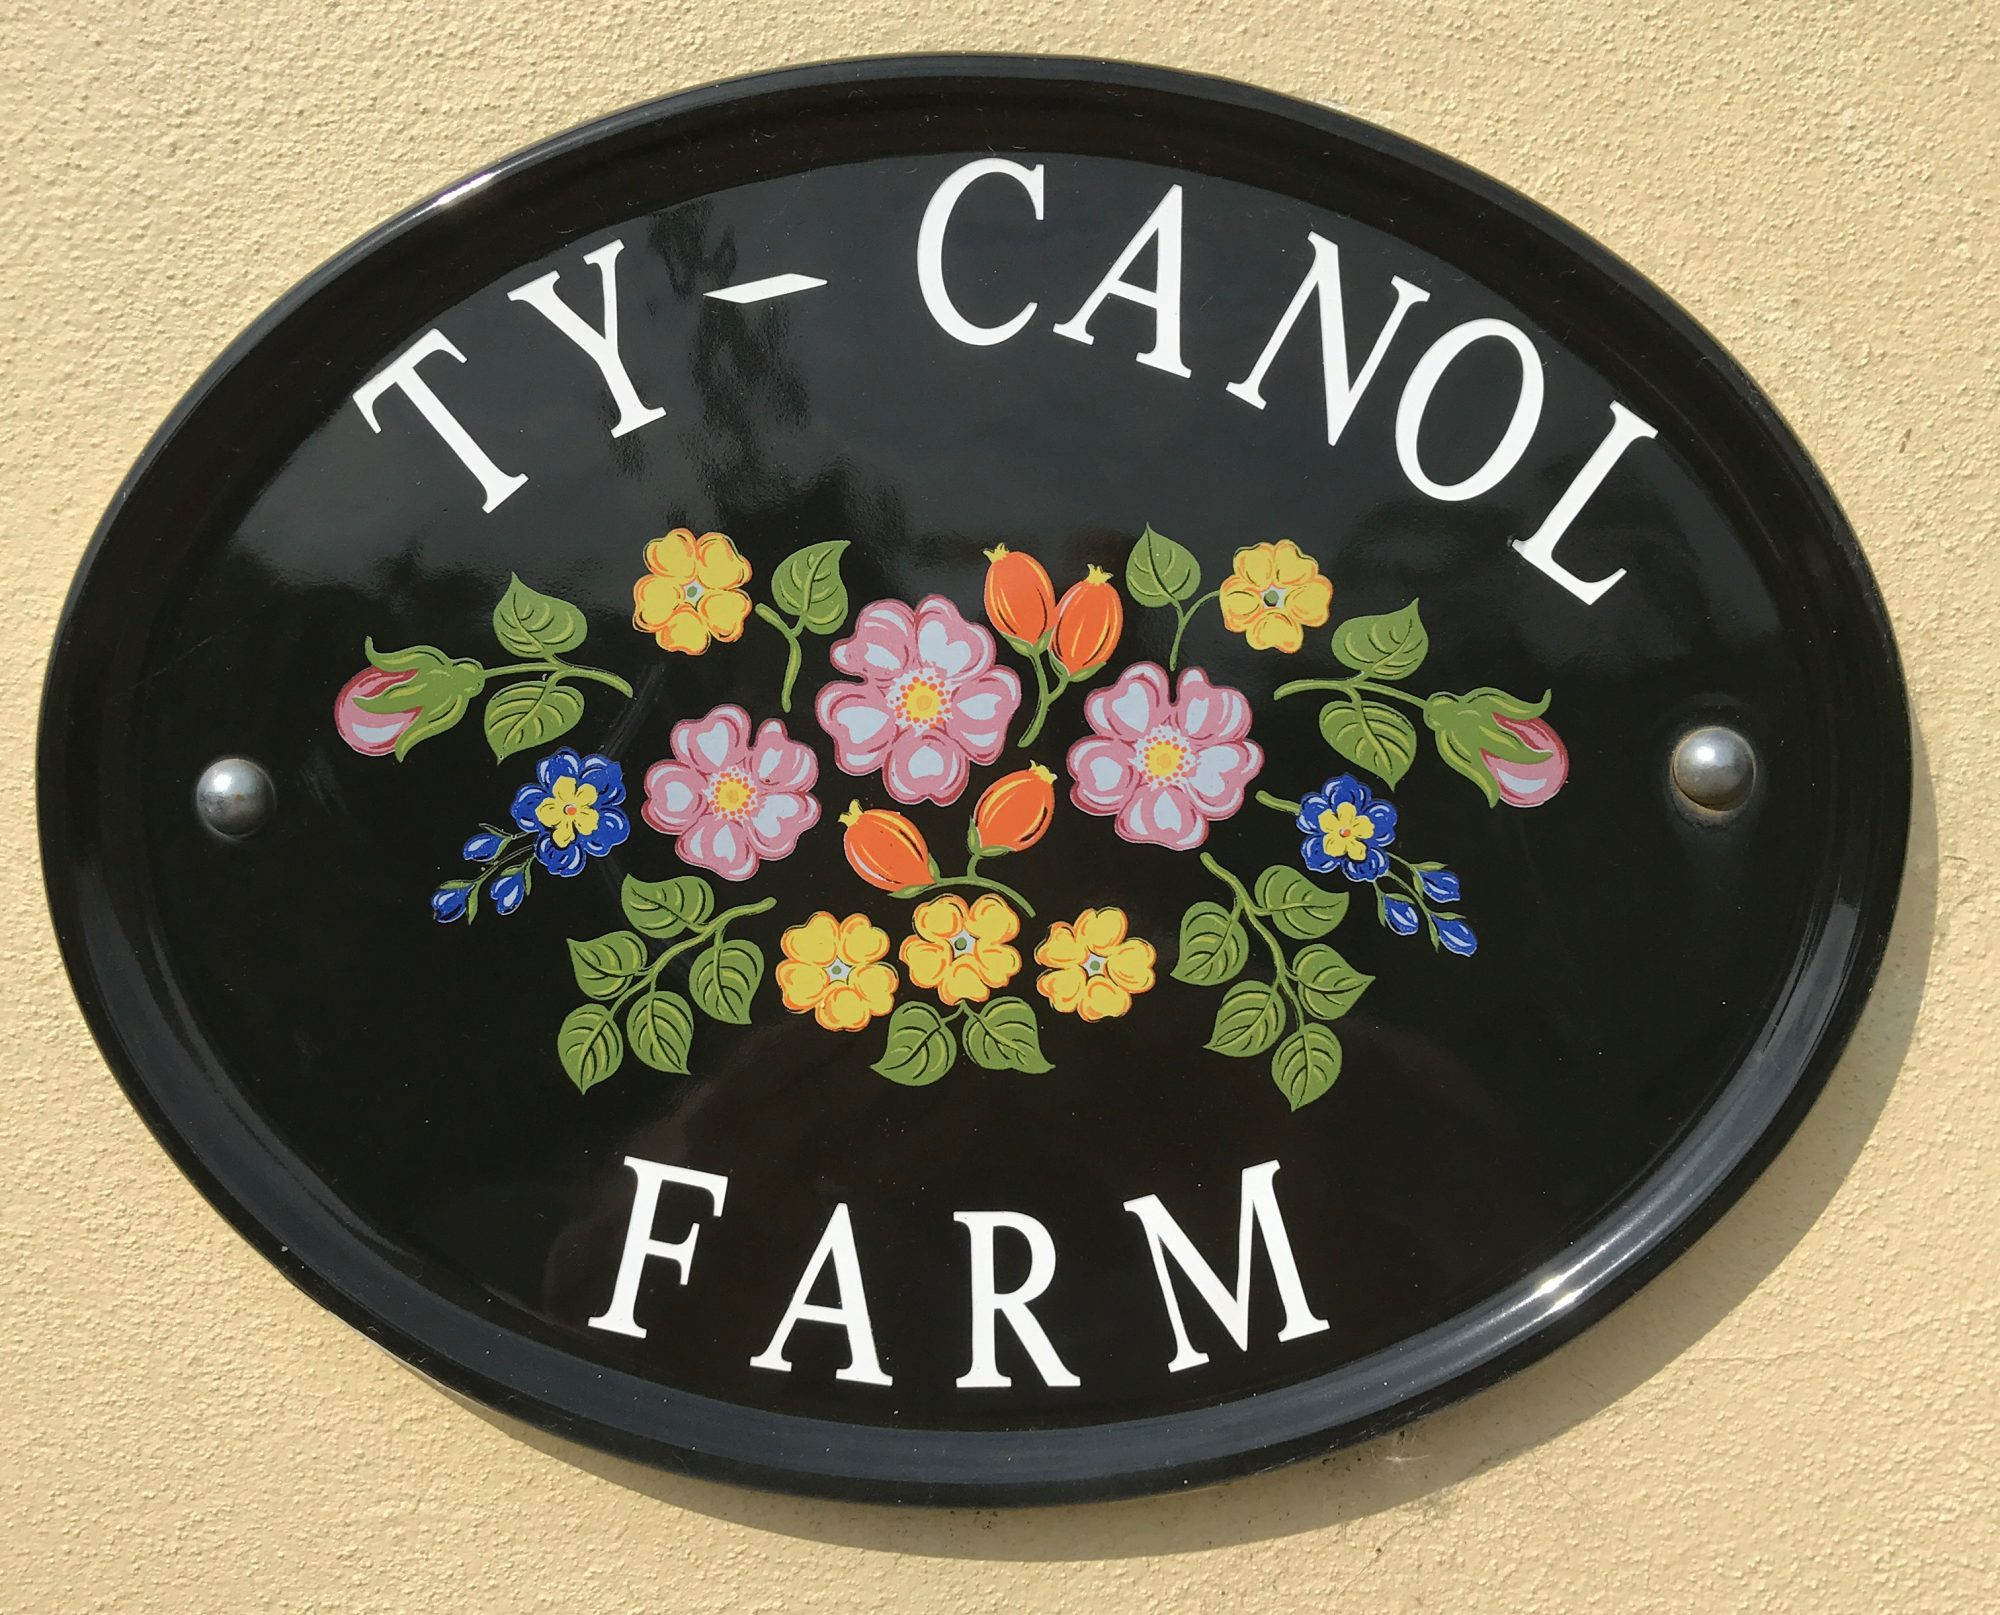 Ty Canol Farm Camping Neath